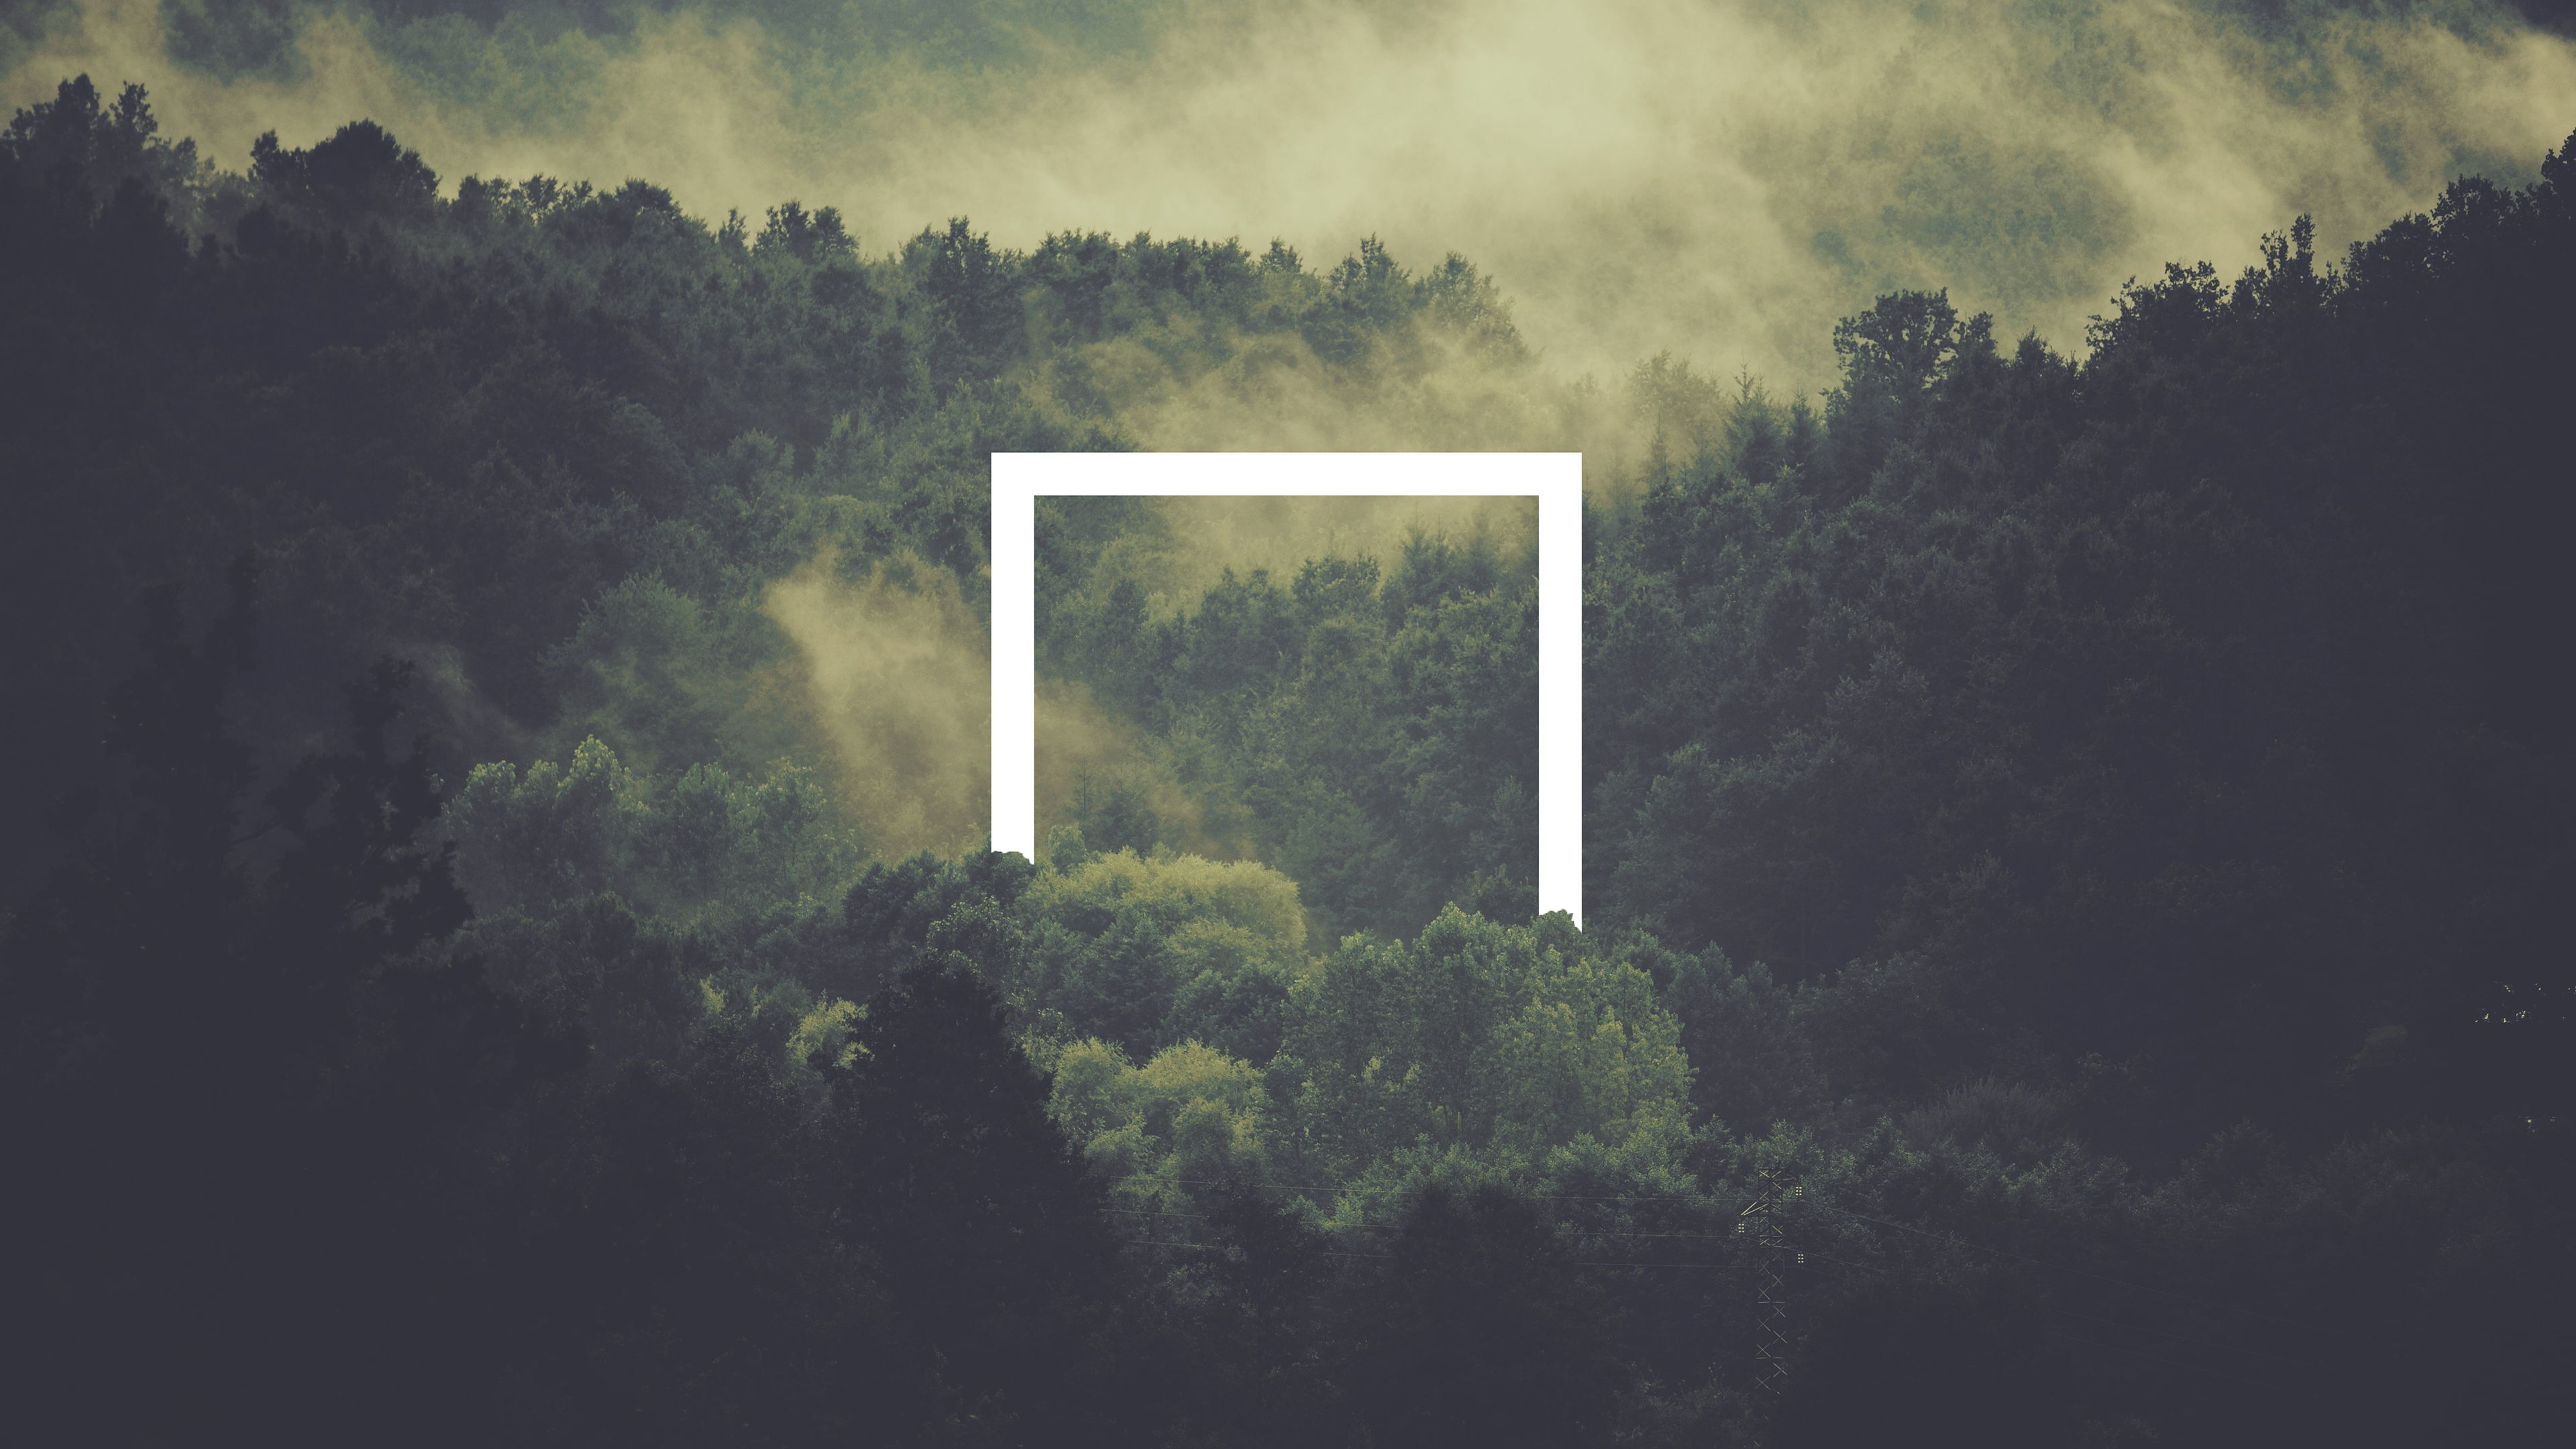 Abstract Vs Nature 4k Nature Wallpapers Hd Wallpapers Behance Wallpapers Abstract Wallpapers 4k Wa Abstract Shapes Photography Design Landscape Photography